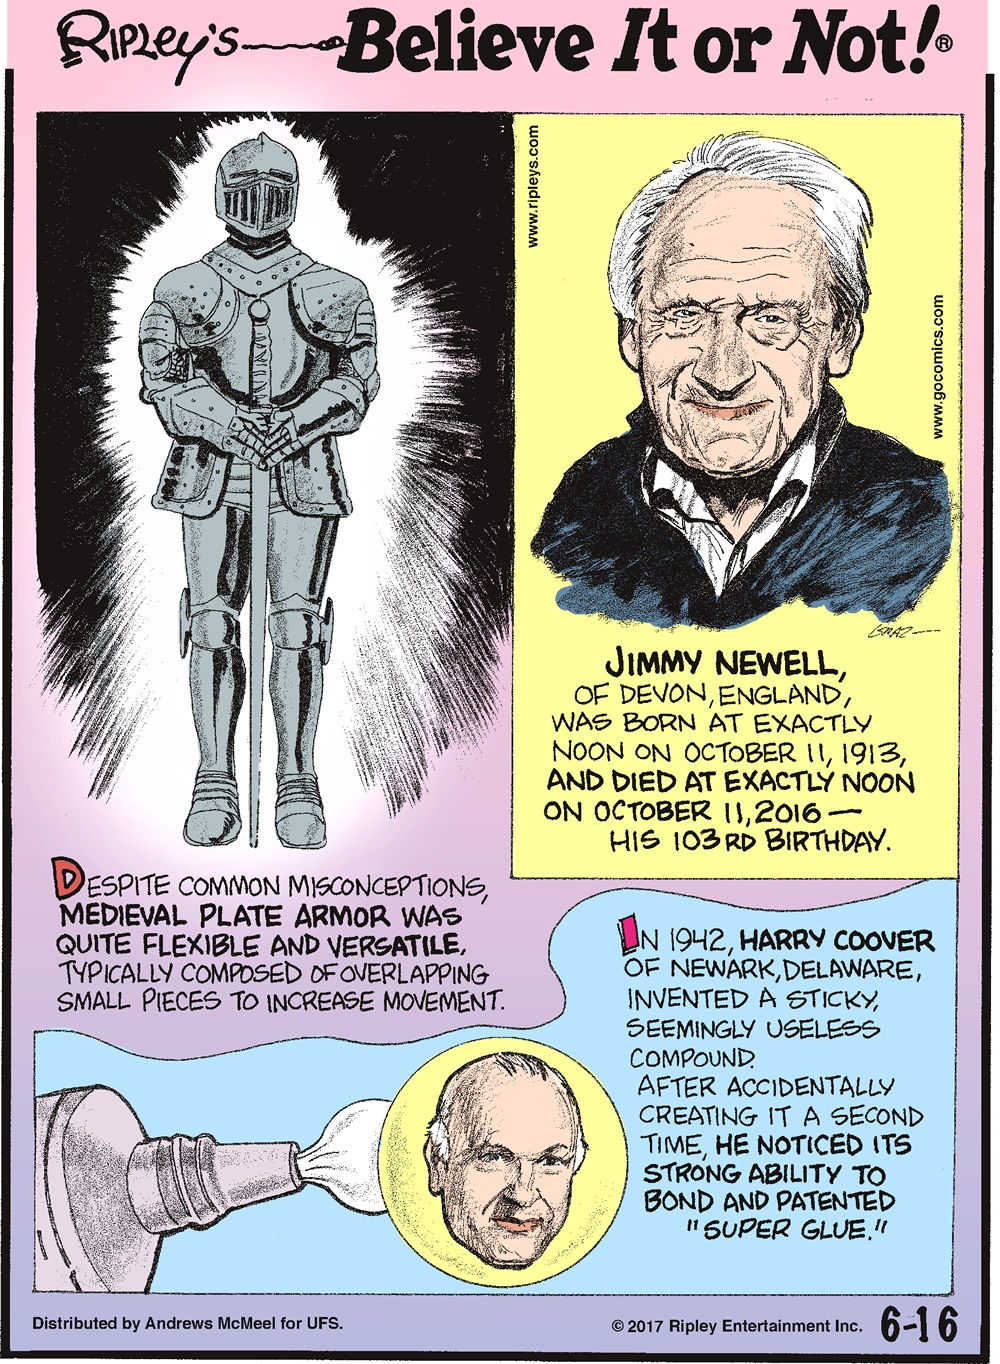 """Despite common misconceptions, medieval plate armor was quite flexible and versatile, typically composed of overlapping small pieces to increase movement.-------------------- Jimmy Newell, of Devon, England, was born at exactly noon on October 11, 1913, and died at exactly noon on October 11, 2016 - his 103rd birthday.--------------------- In 1942, Harry Coover of Newark, Delaware, invented a sticky, seemingly useless compound. After accidentally creating it a second time, he noticed its strong ability to bond and patented """"Super Glue."""""""